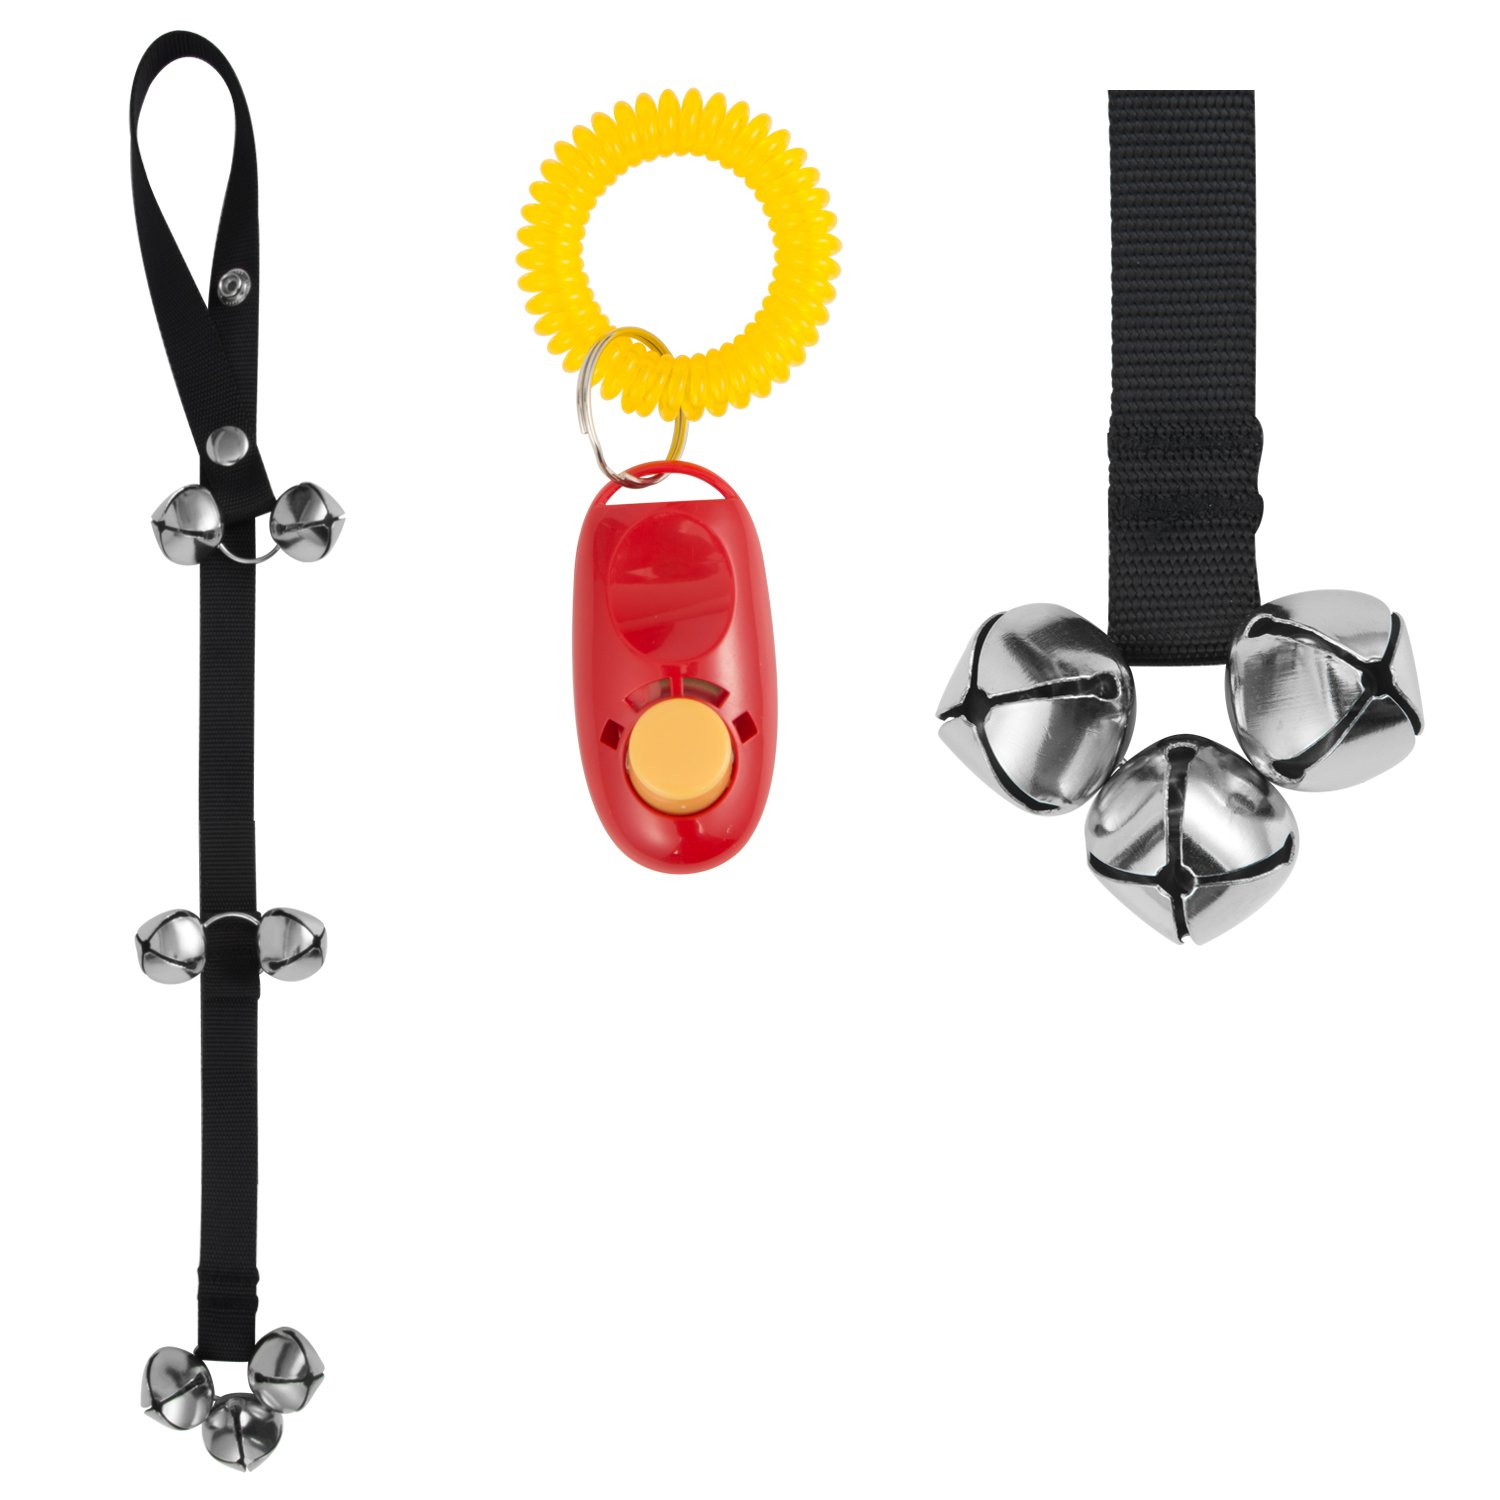 Elar julie Dog Doorbell with Extra Loud Bells. Buy One Get One Clicker For Fr